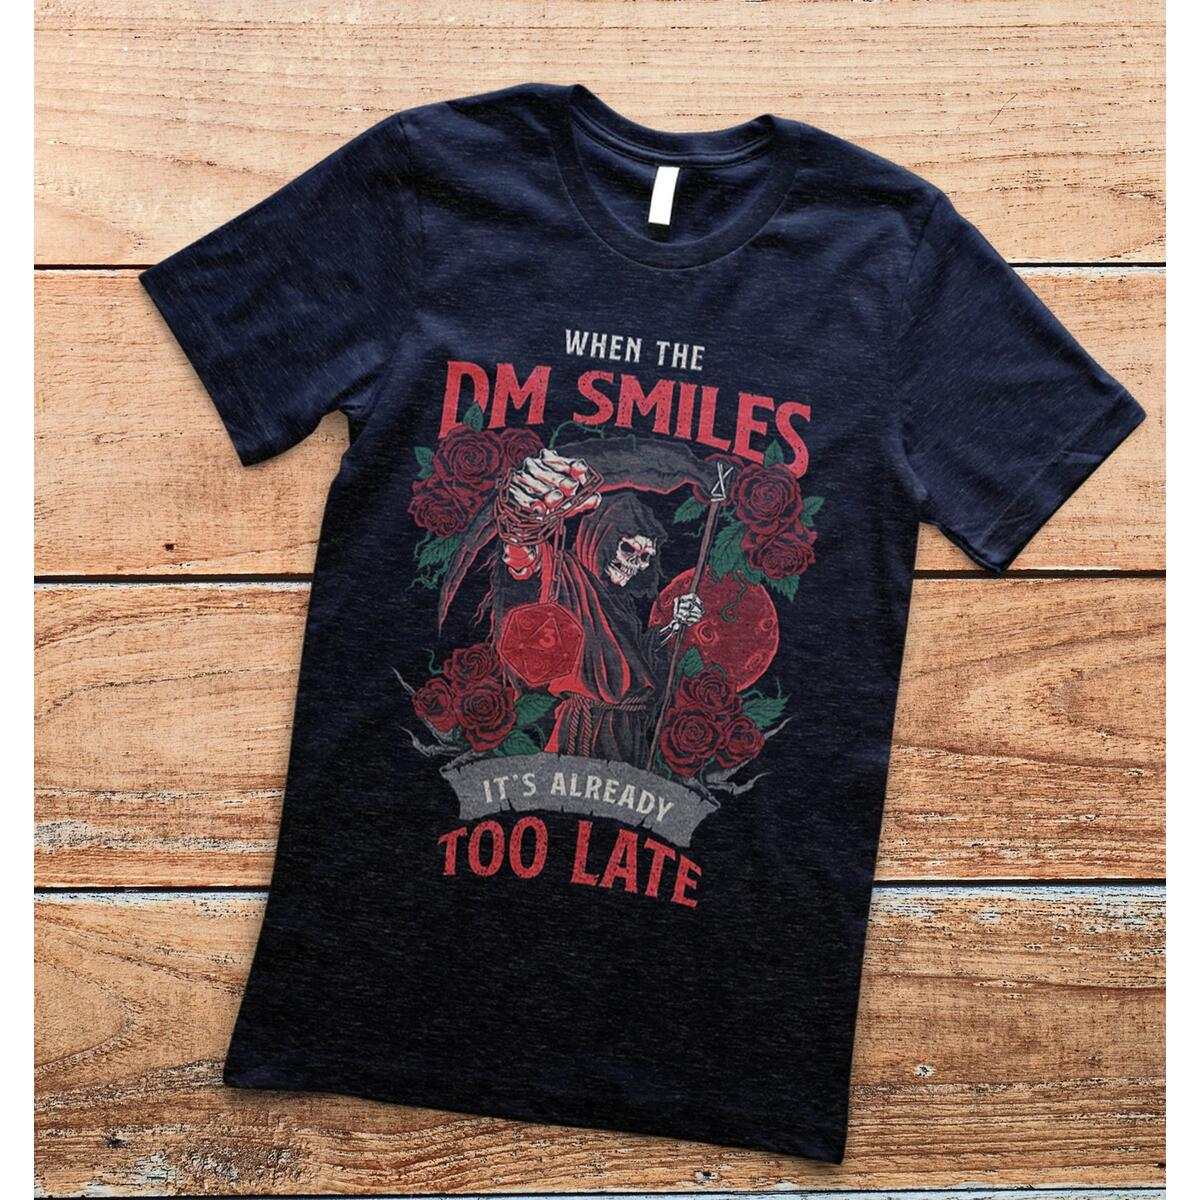 When The DM Smiles It's Already Too Late T-Shirt - Funny D&D Shirt - Nerdy DnD Gamer Gift (all sizes, all colors, mens/womens/youth)